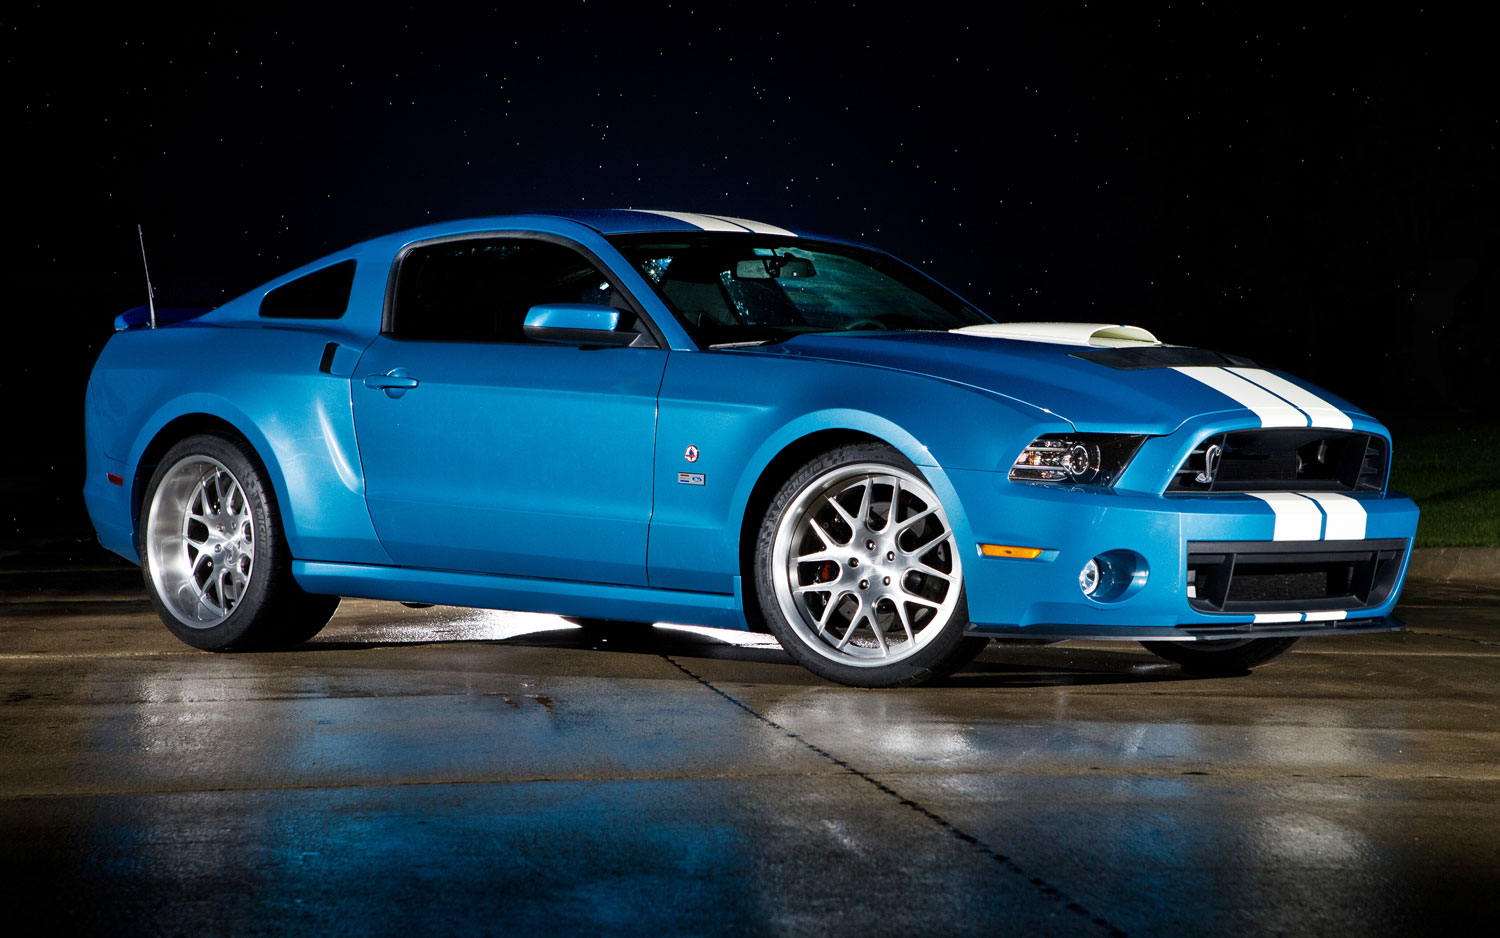 2015 Ford Mustang Shelby Gt500 HD Desktop Background Wallpaper 1500x938